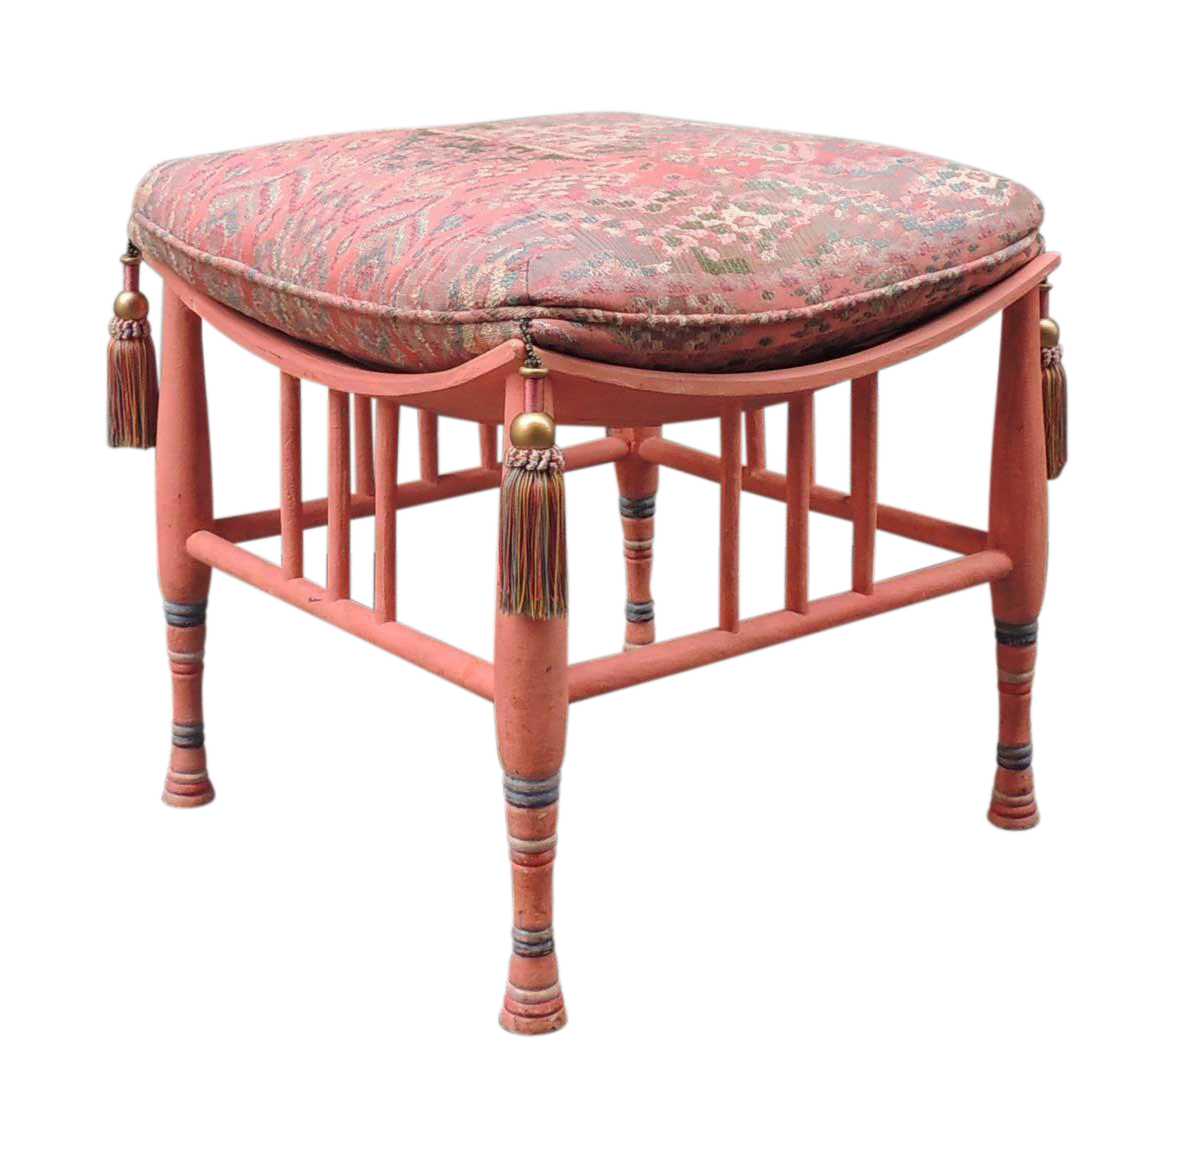 Early 20th C Egyptian Revival Stool Or Ottoman   Image 1 Of 9